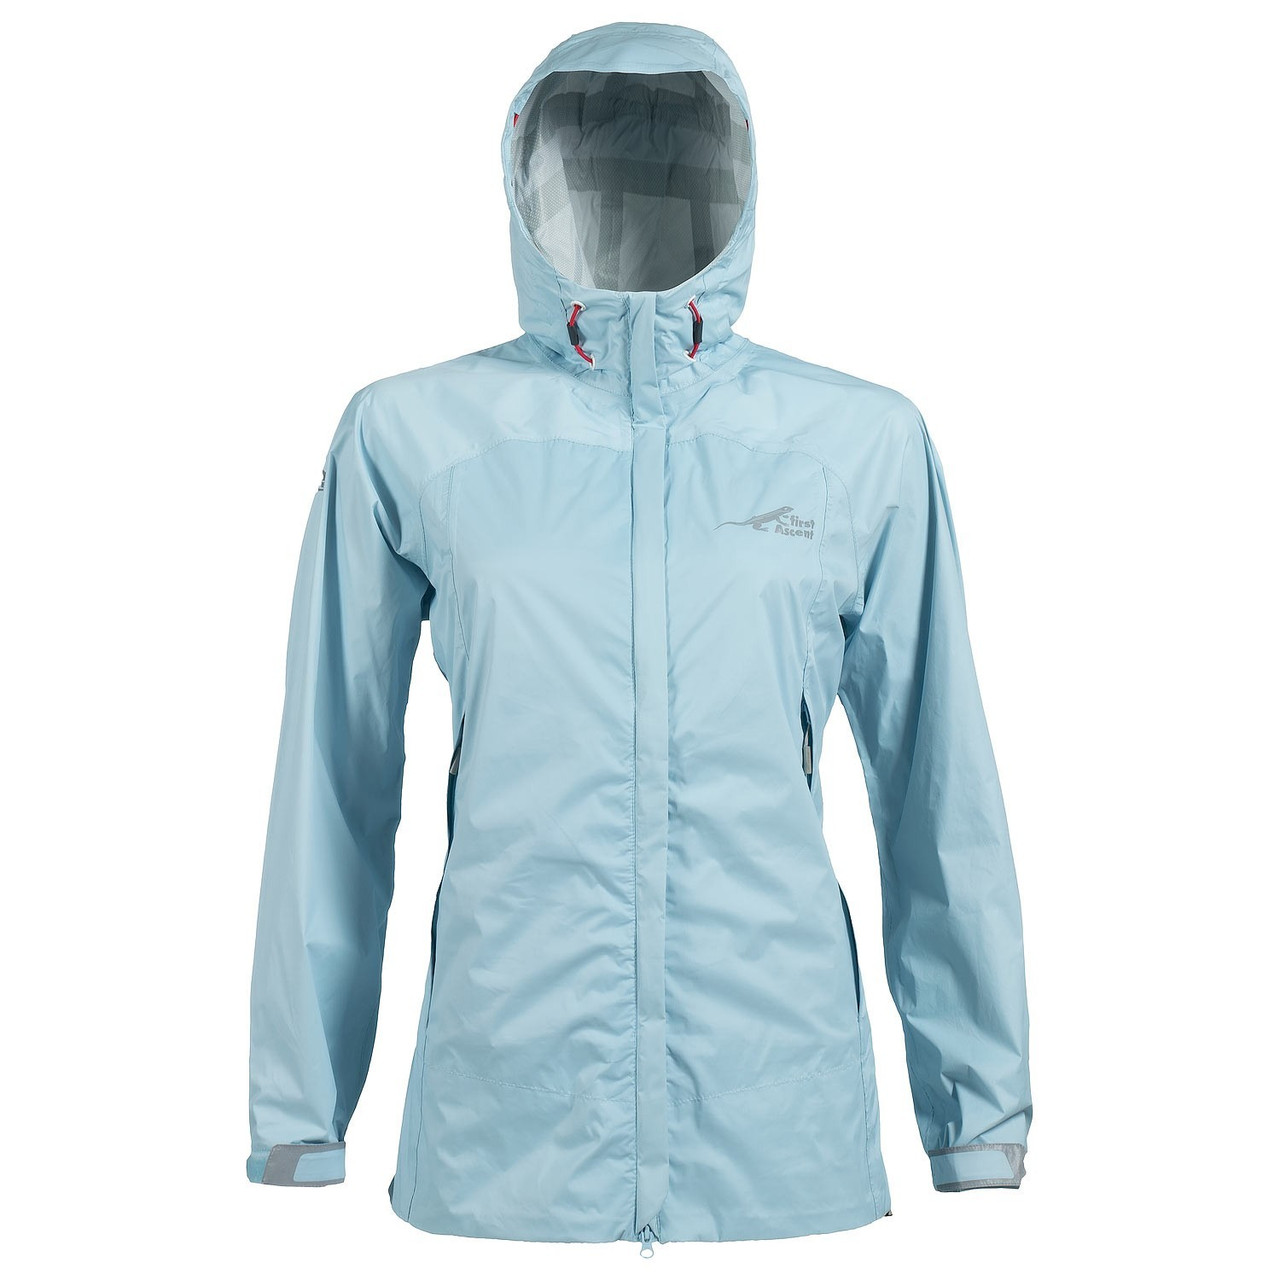 First Ascent Submerge Rain Jacket - Women's